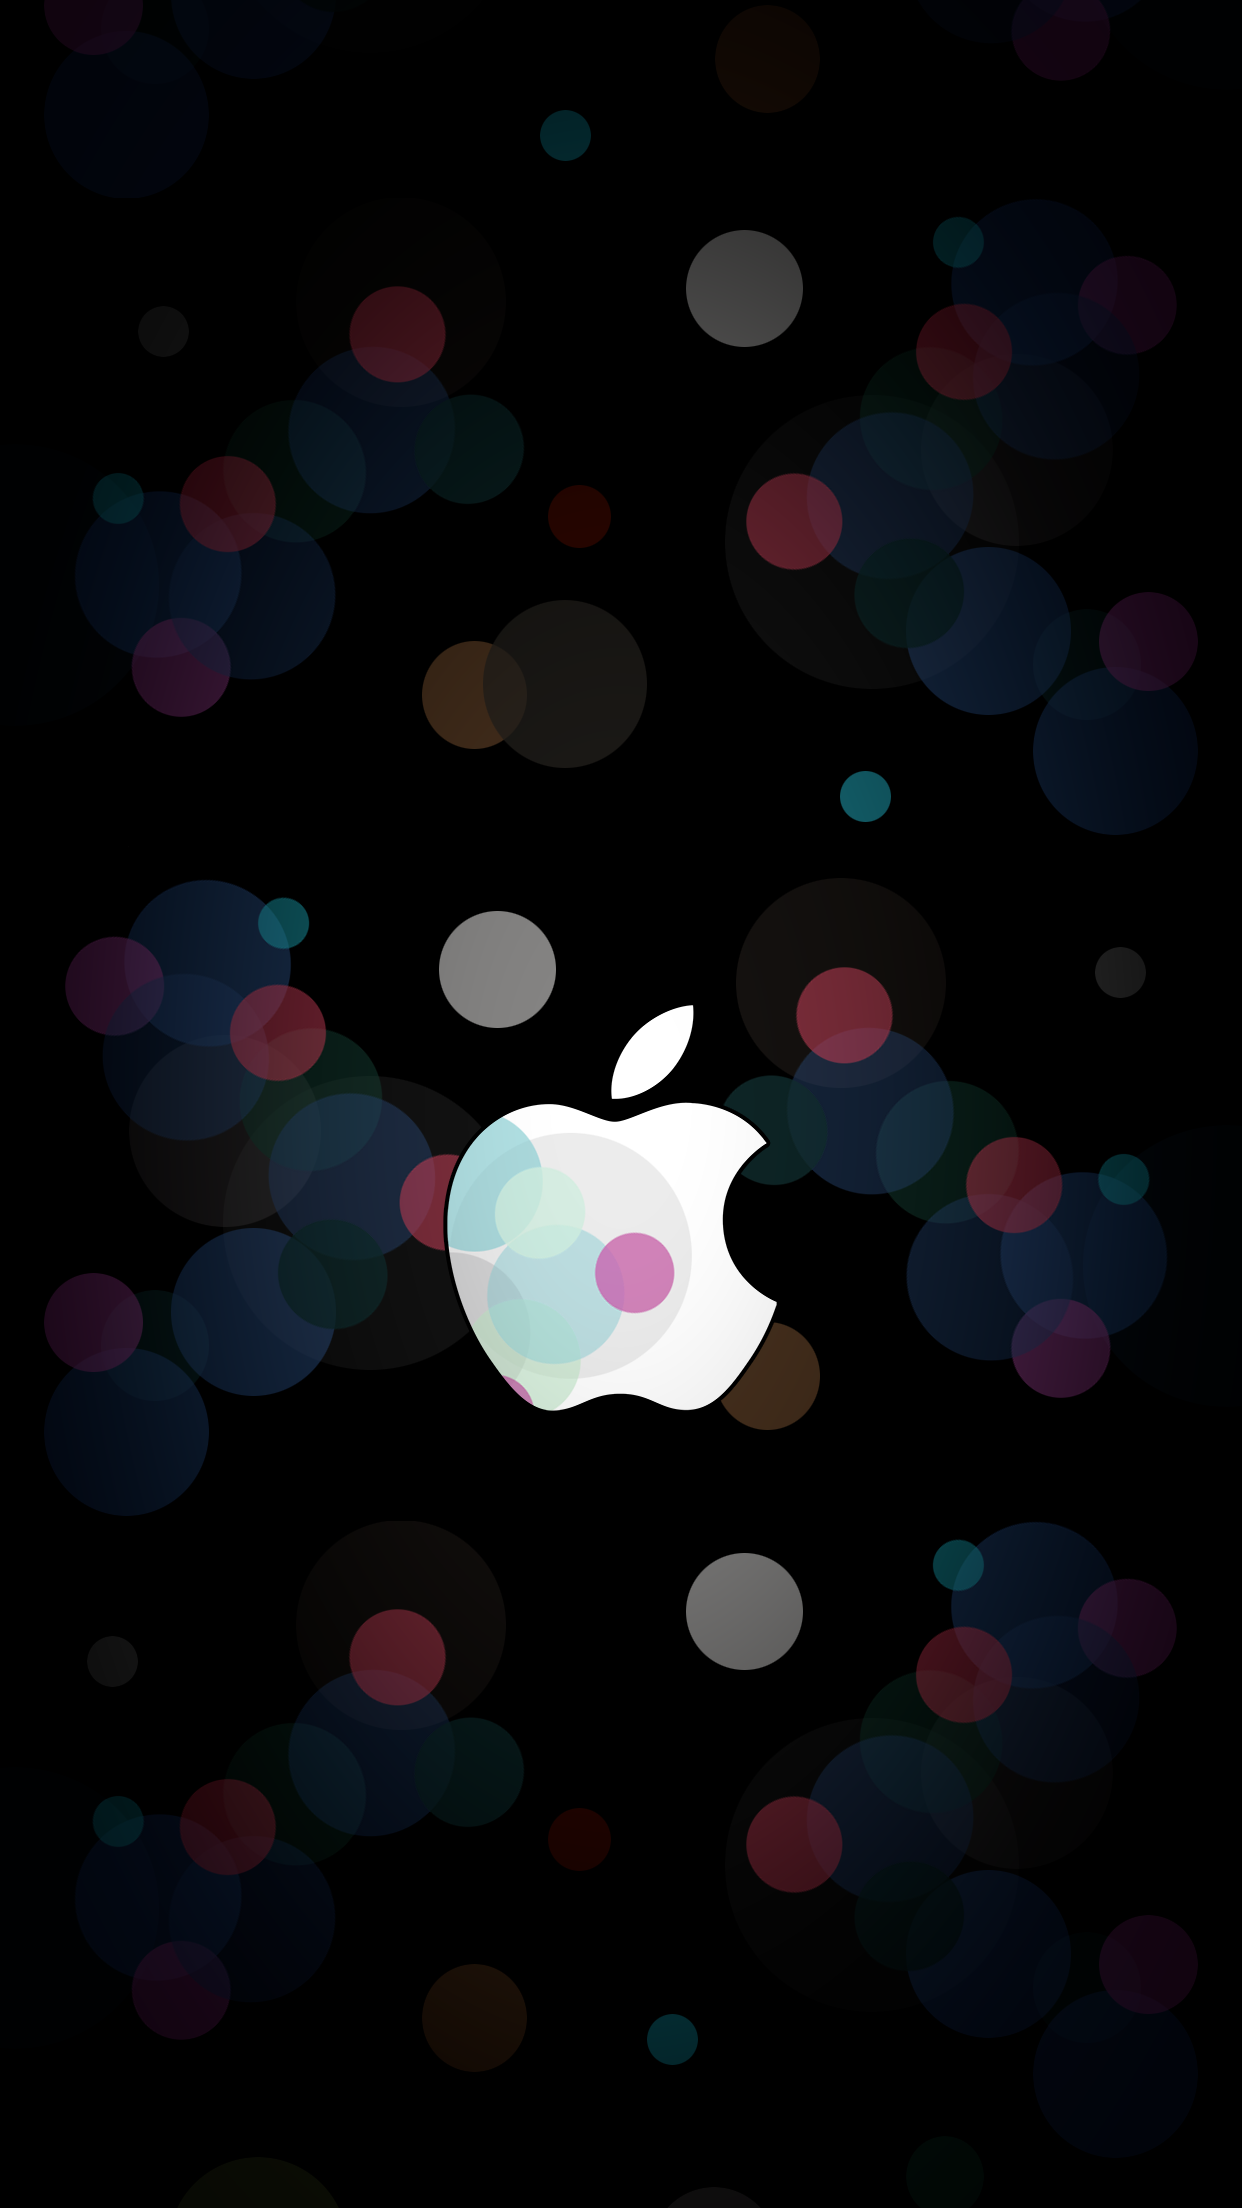 [Bild: apple-september-7-event-wallpaper-ar7-inspired-logo.png]